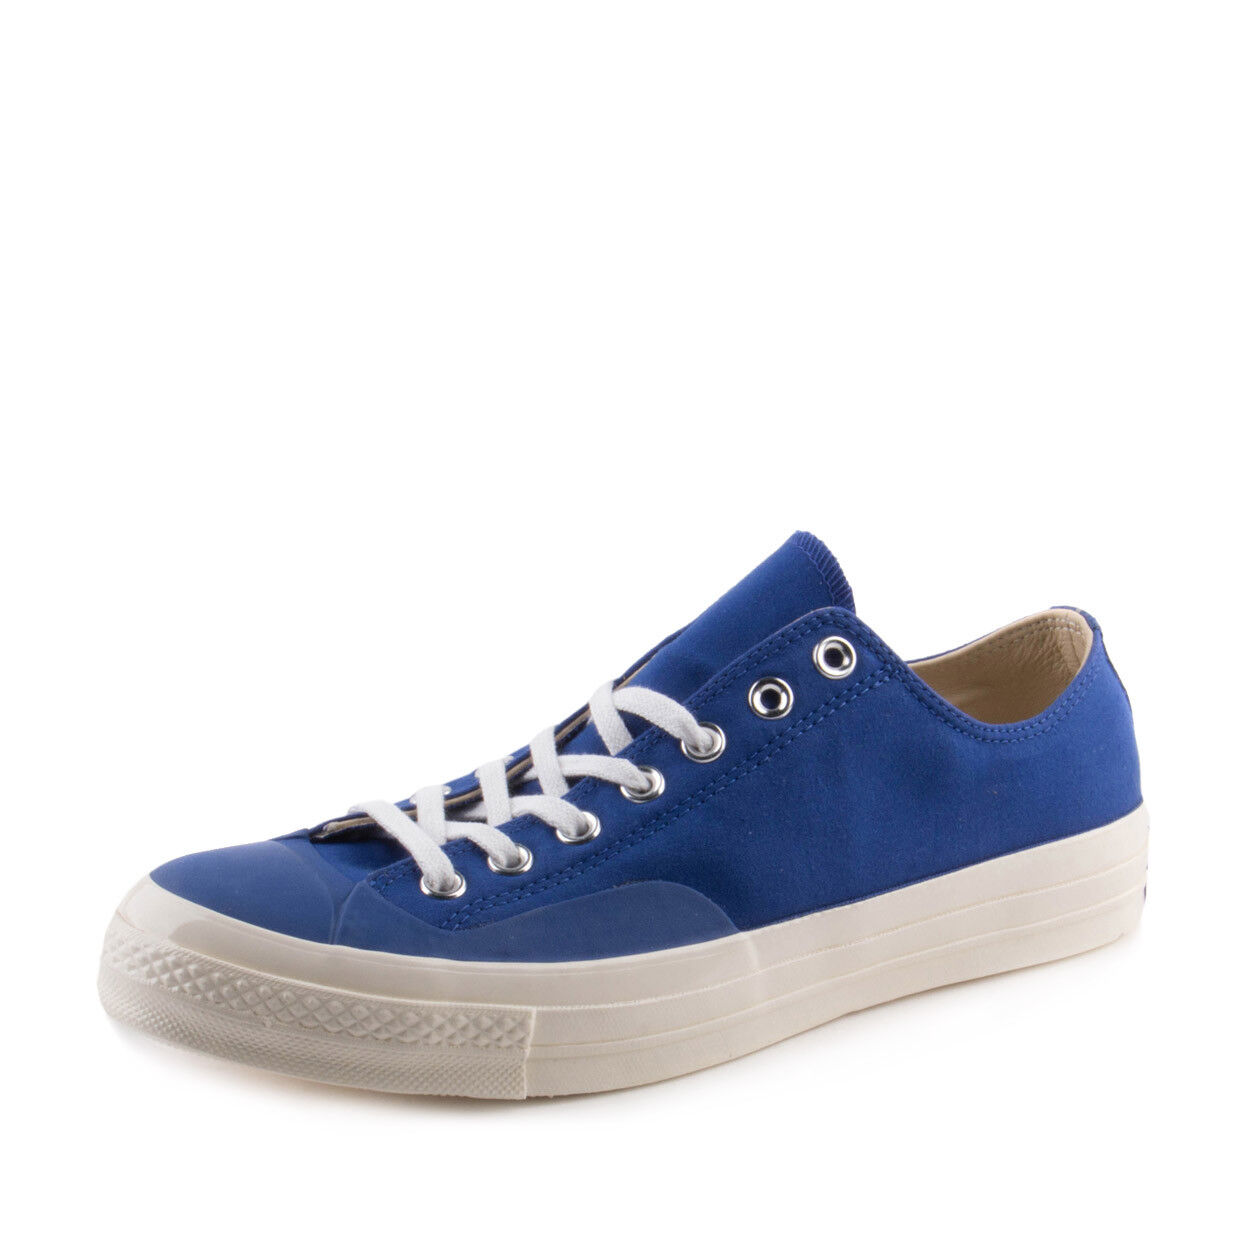 converse - top mens ct 70 ochse niedrigen top - wahr, indigo 155449c 0be9c5